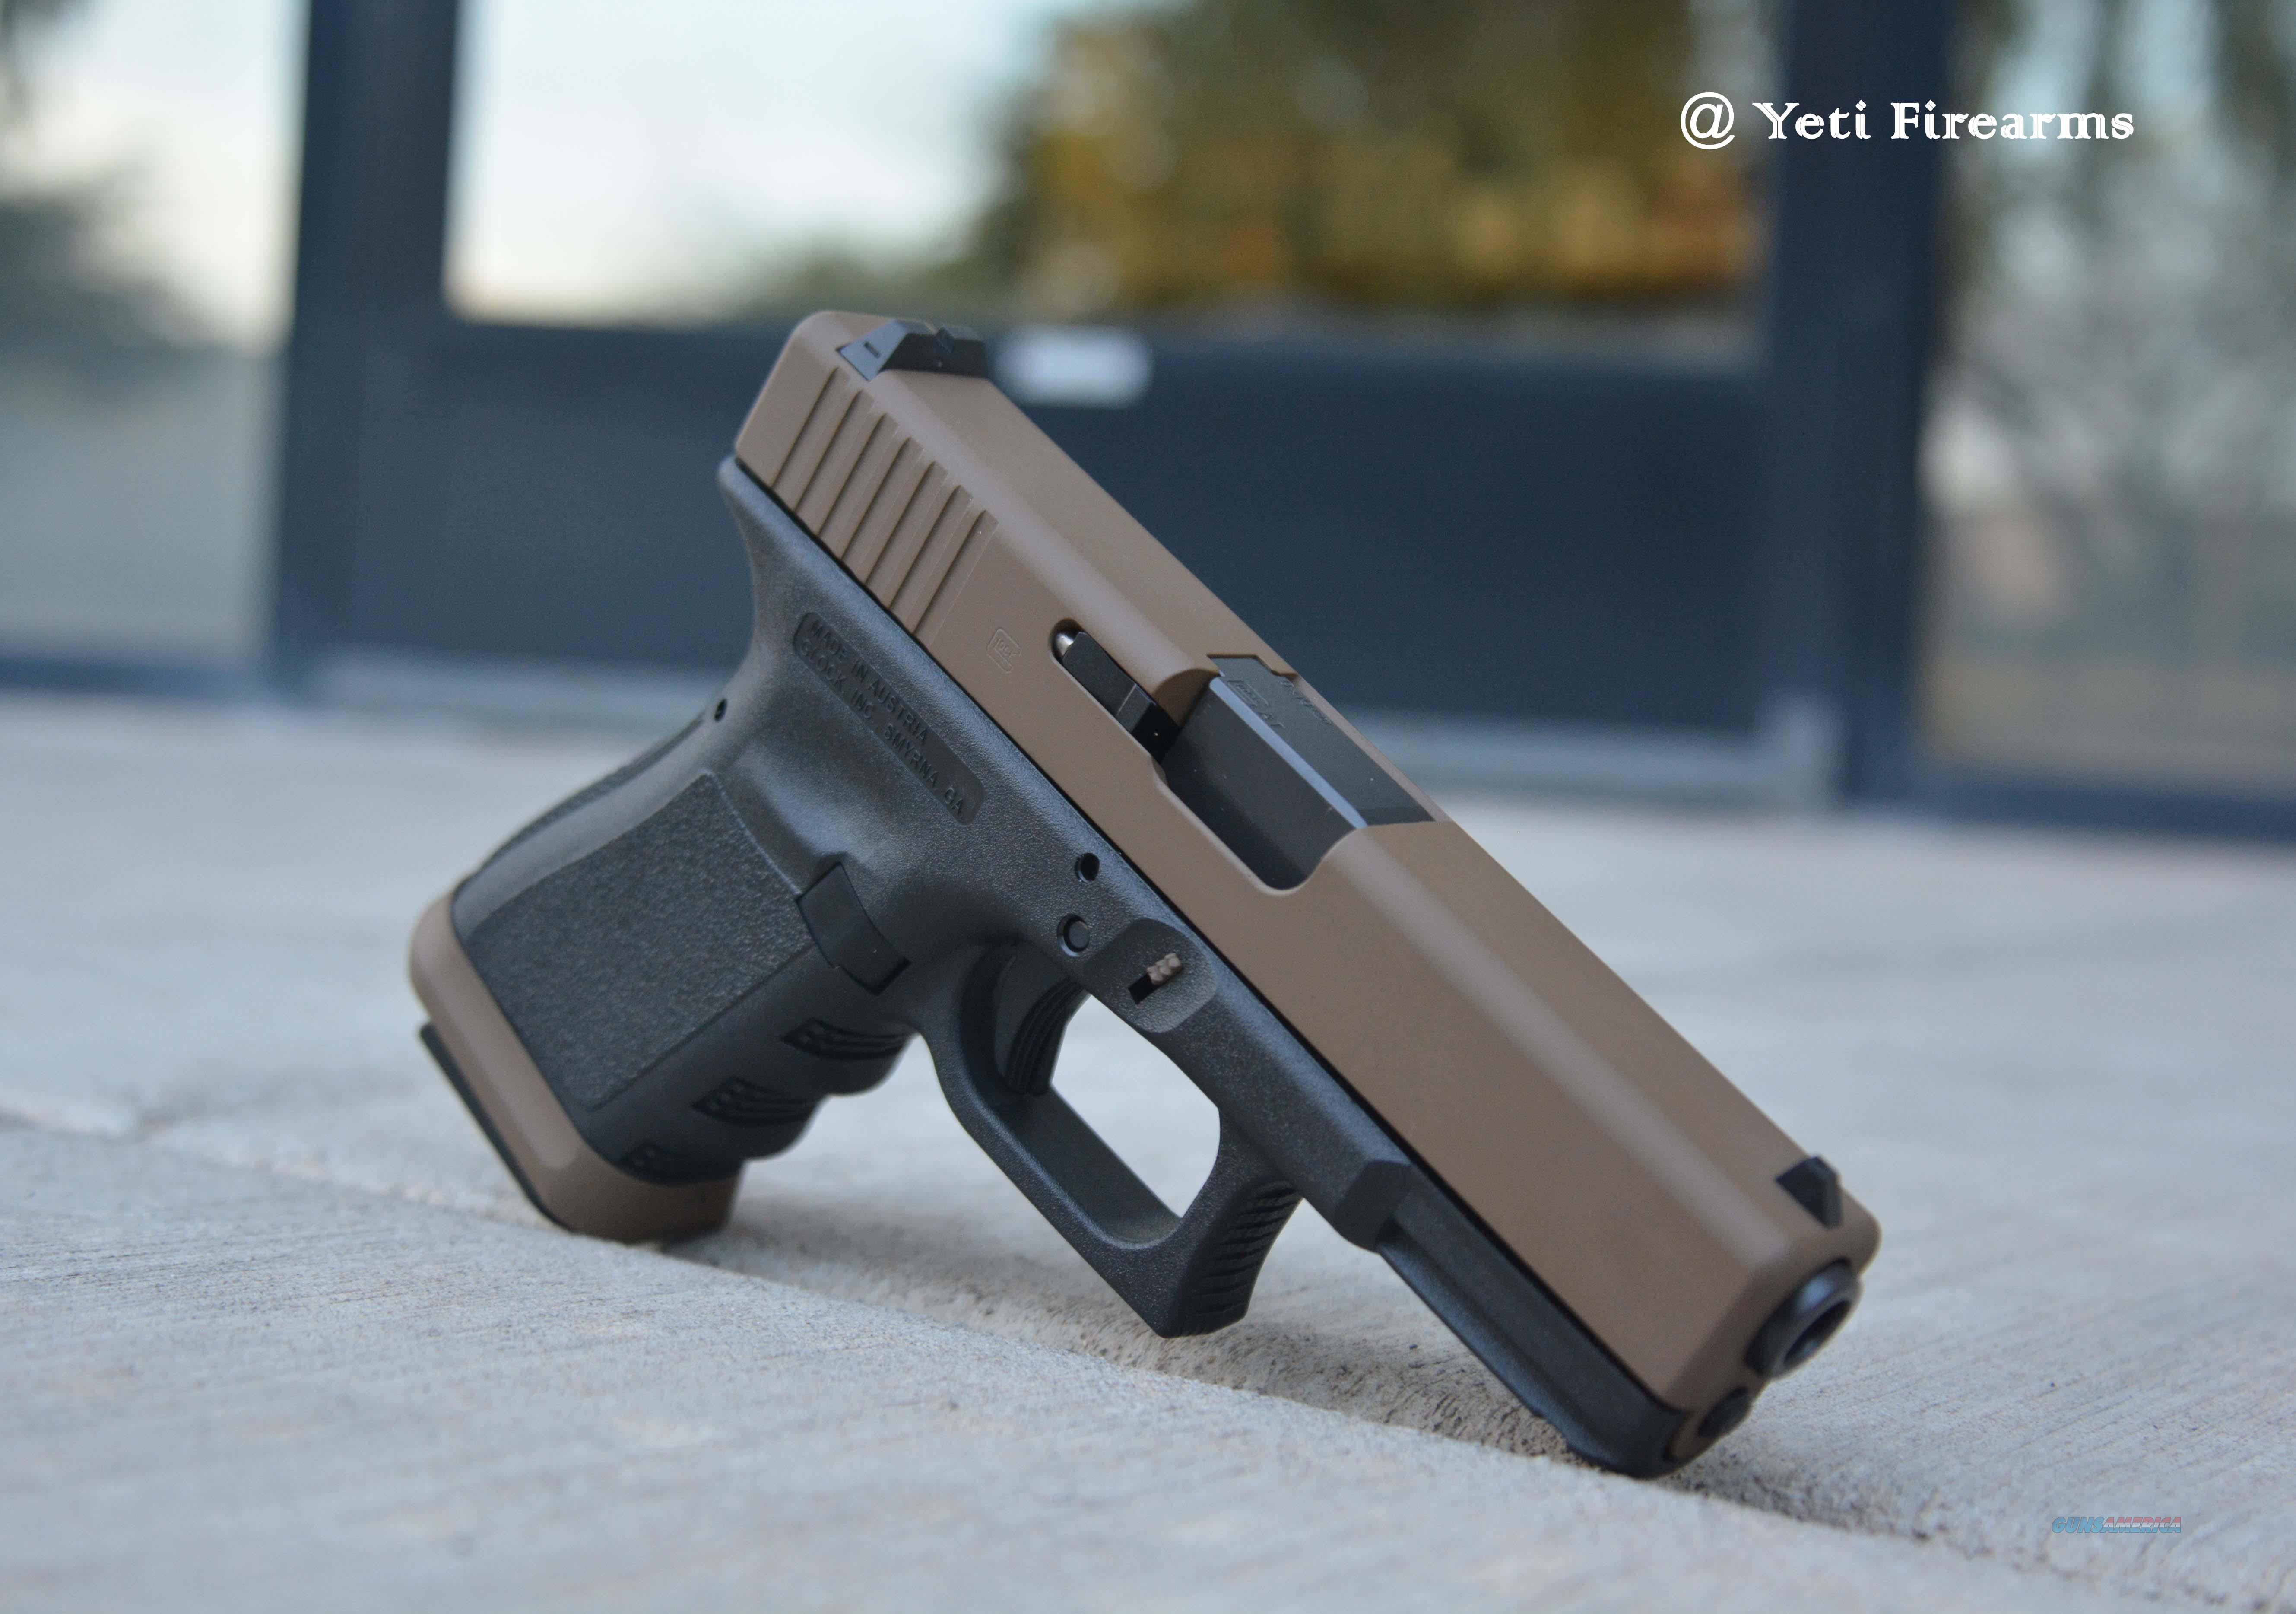 X-Werks Custom Glock 19 G3 9mm Glock FDE Cerakote Agency Arms Magwell Zev  Extended Mag Release